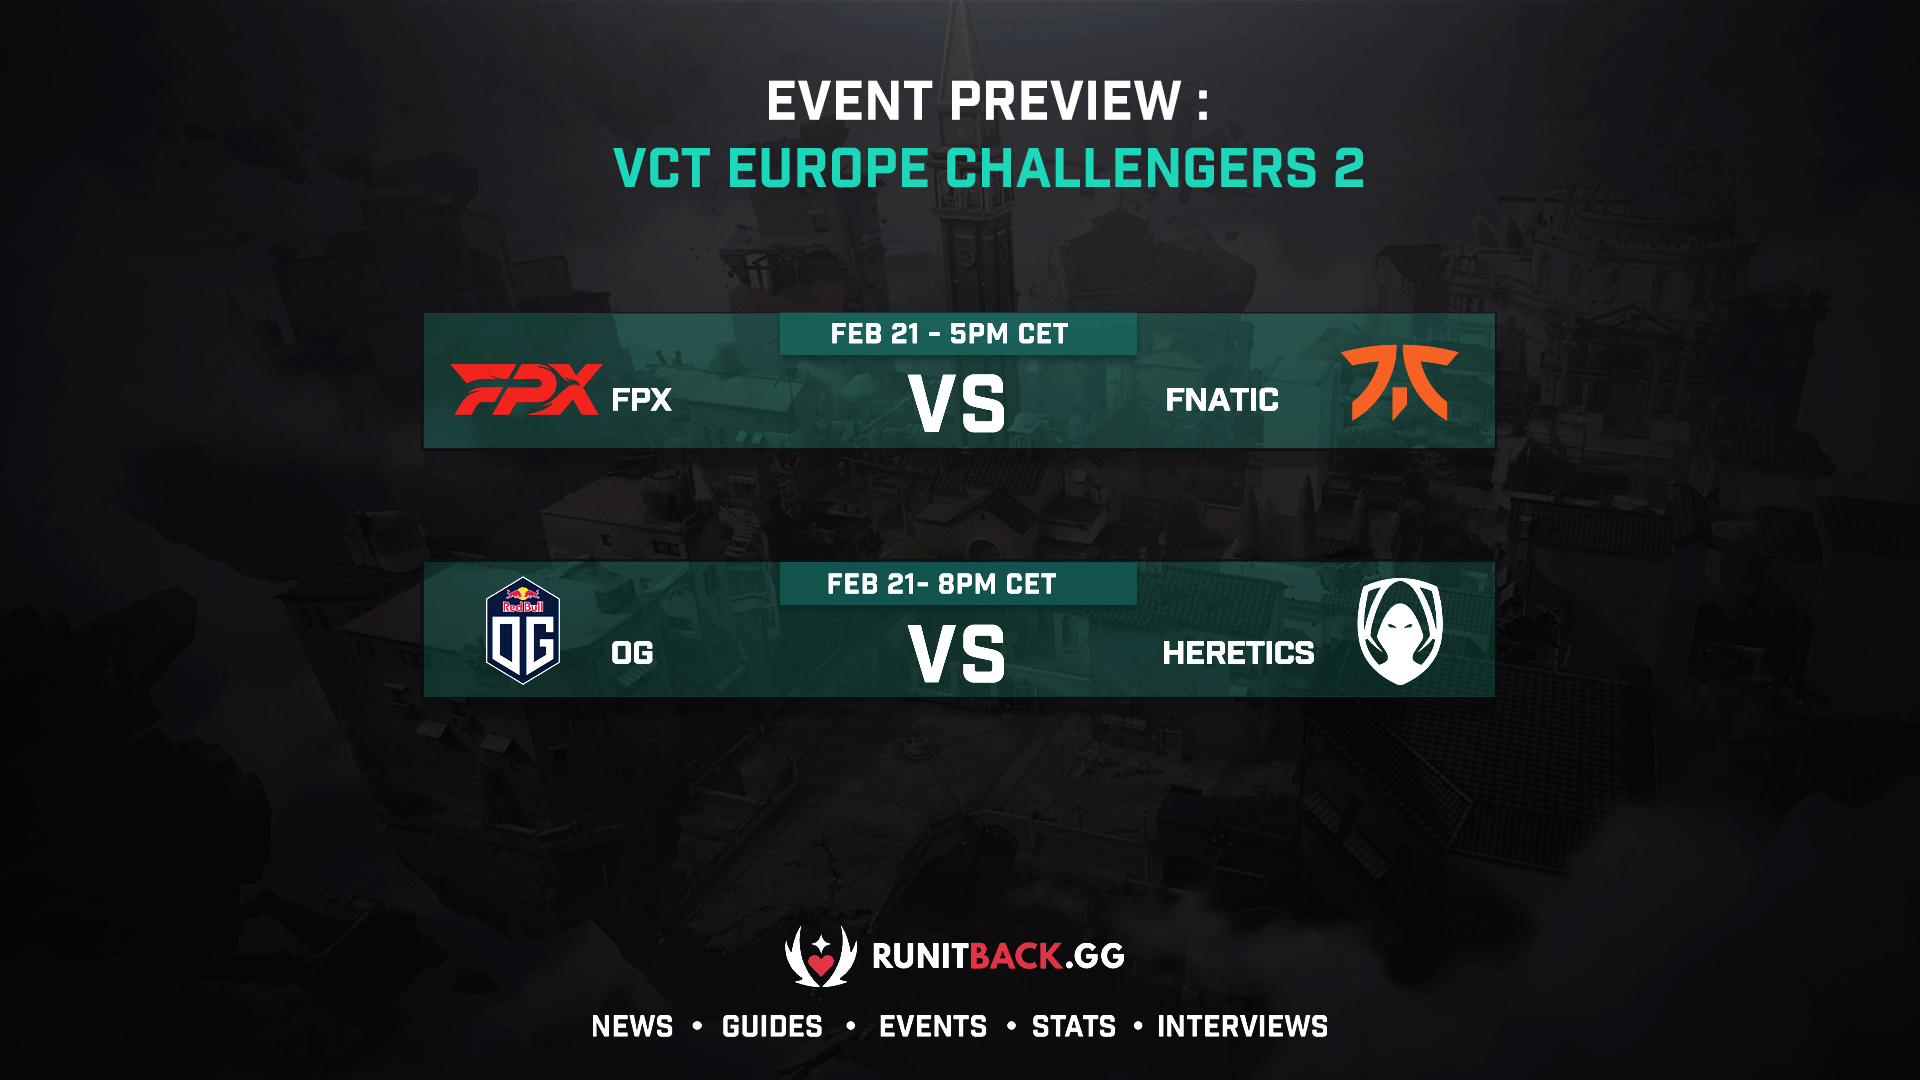 VCT Europe Challengers 2 Day 2 Preview: Fnatic and Heretics looking to bounce back